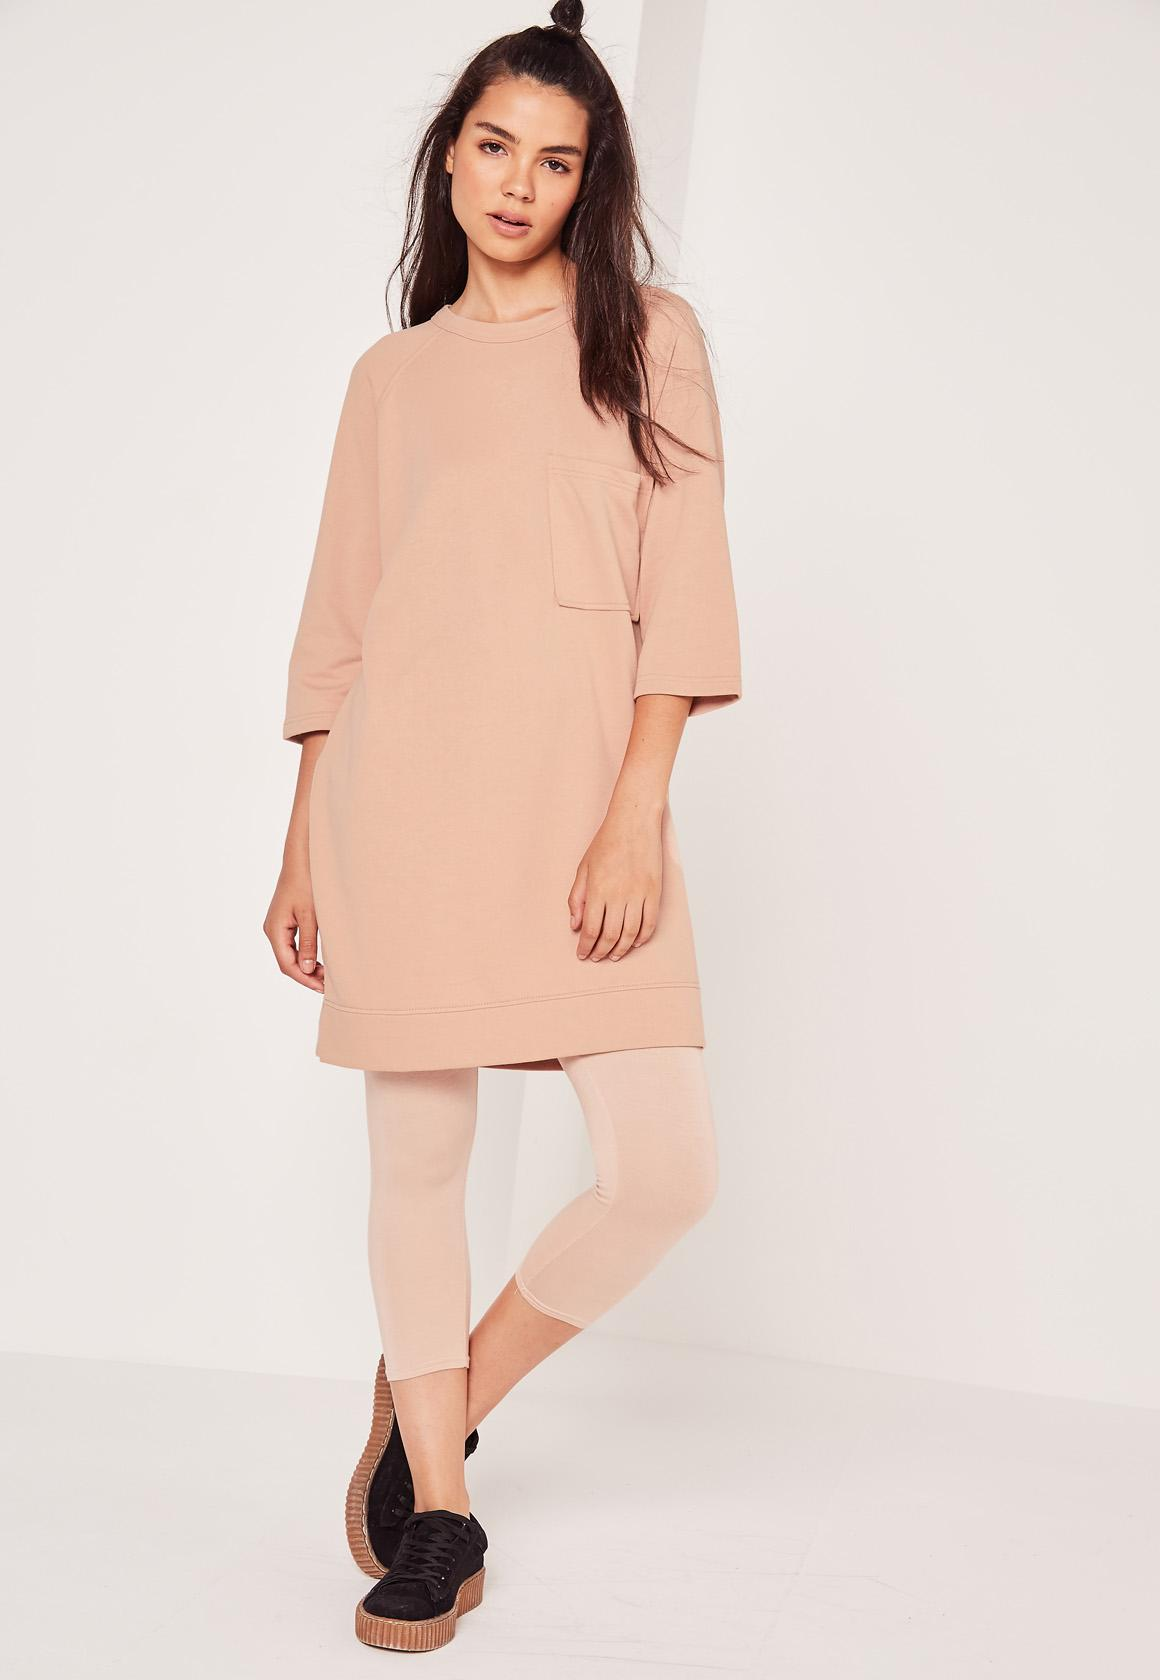 nude oversized pocket sweater dress | Missguided